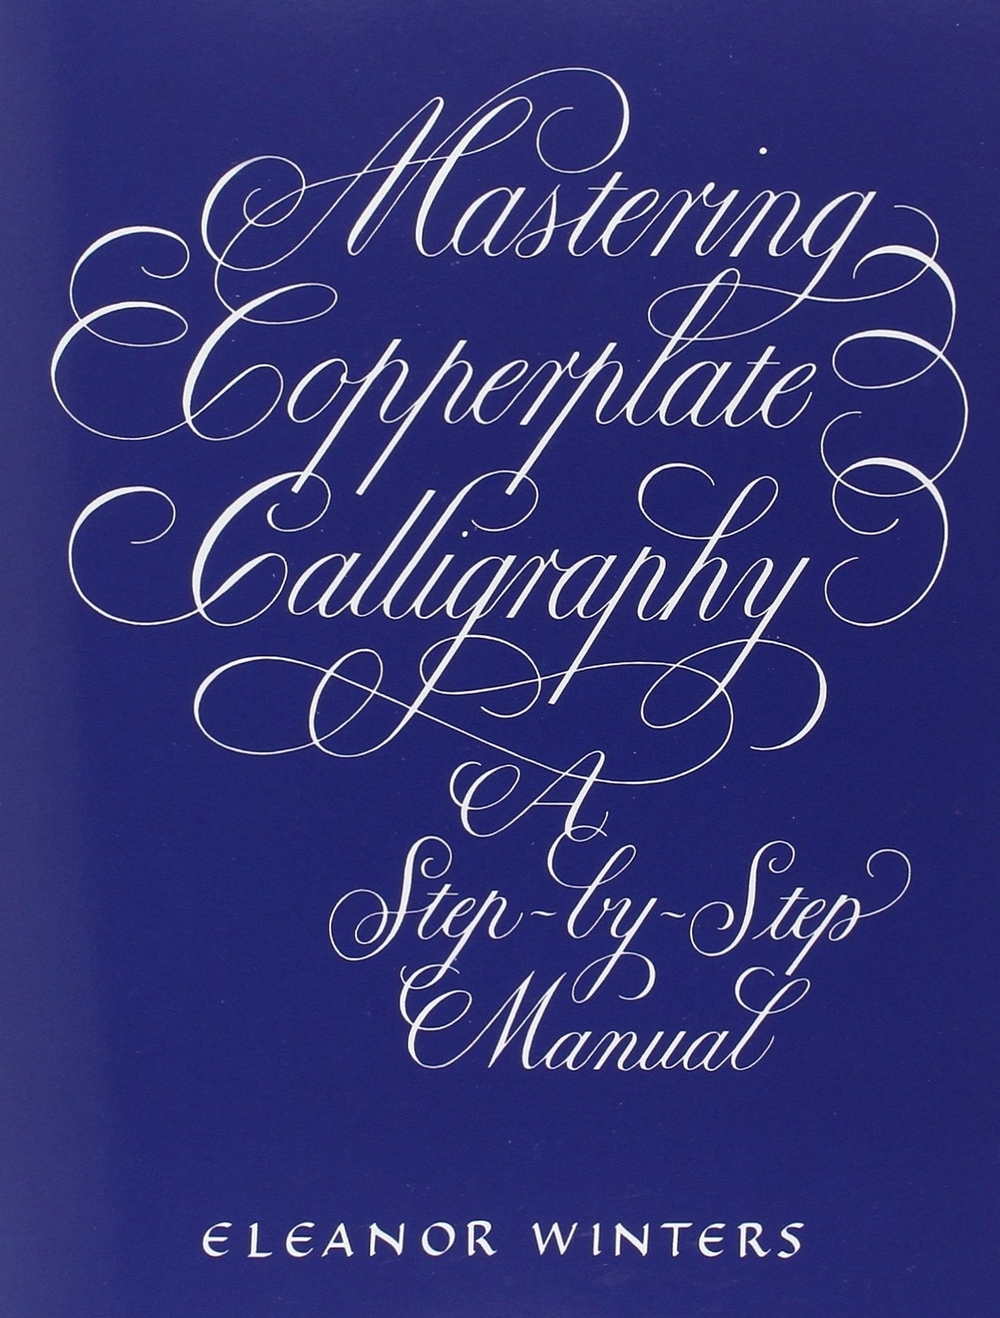 Mastering Copperplate Calligraphy by Eleanor Winters.jpg